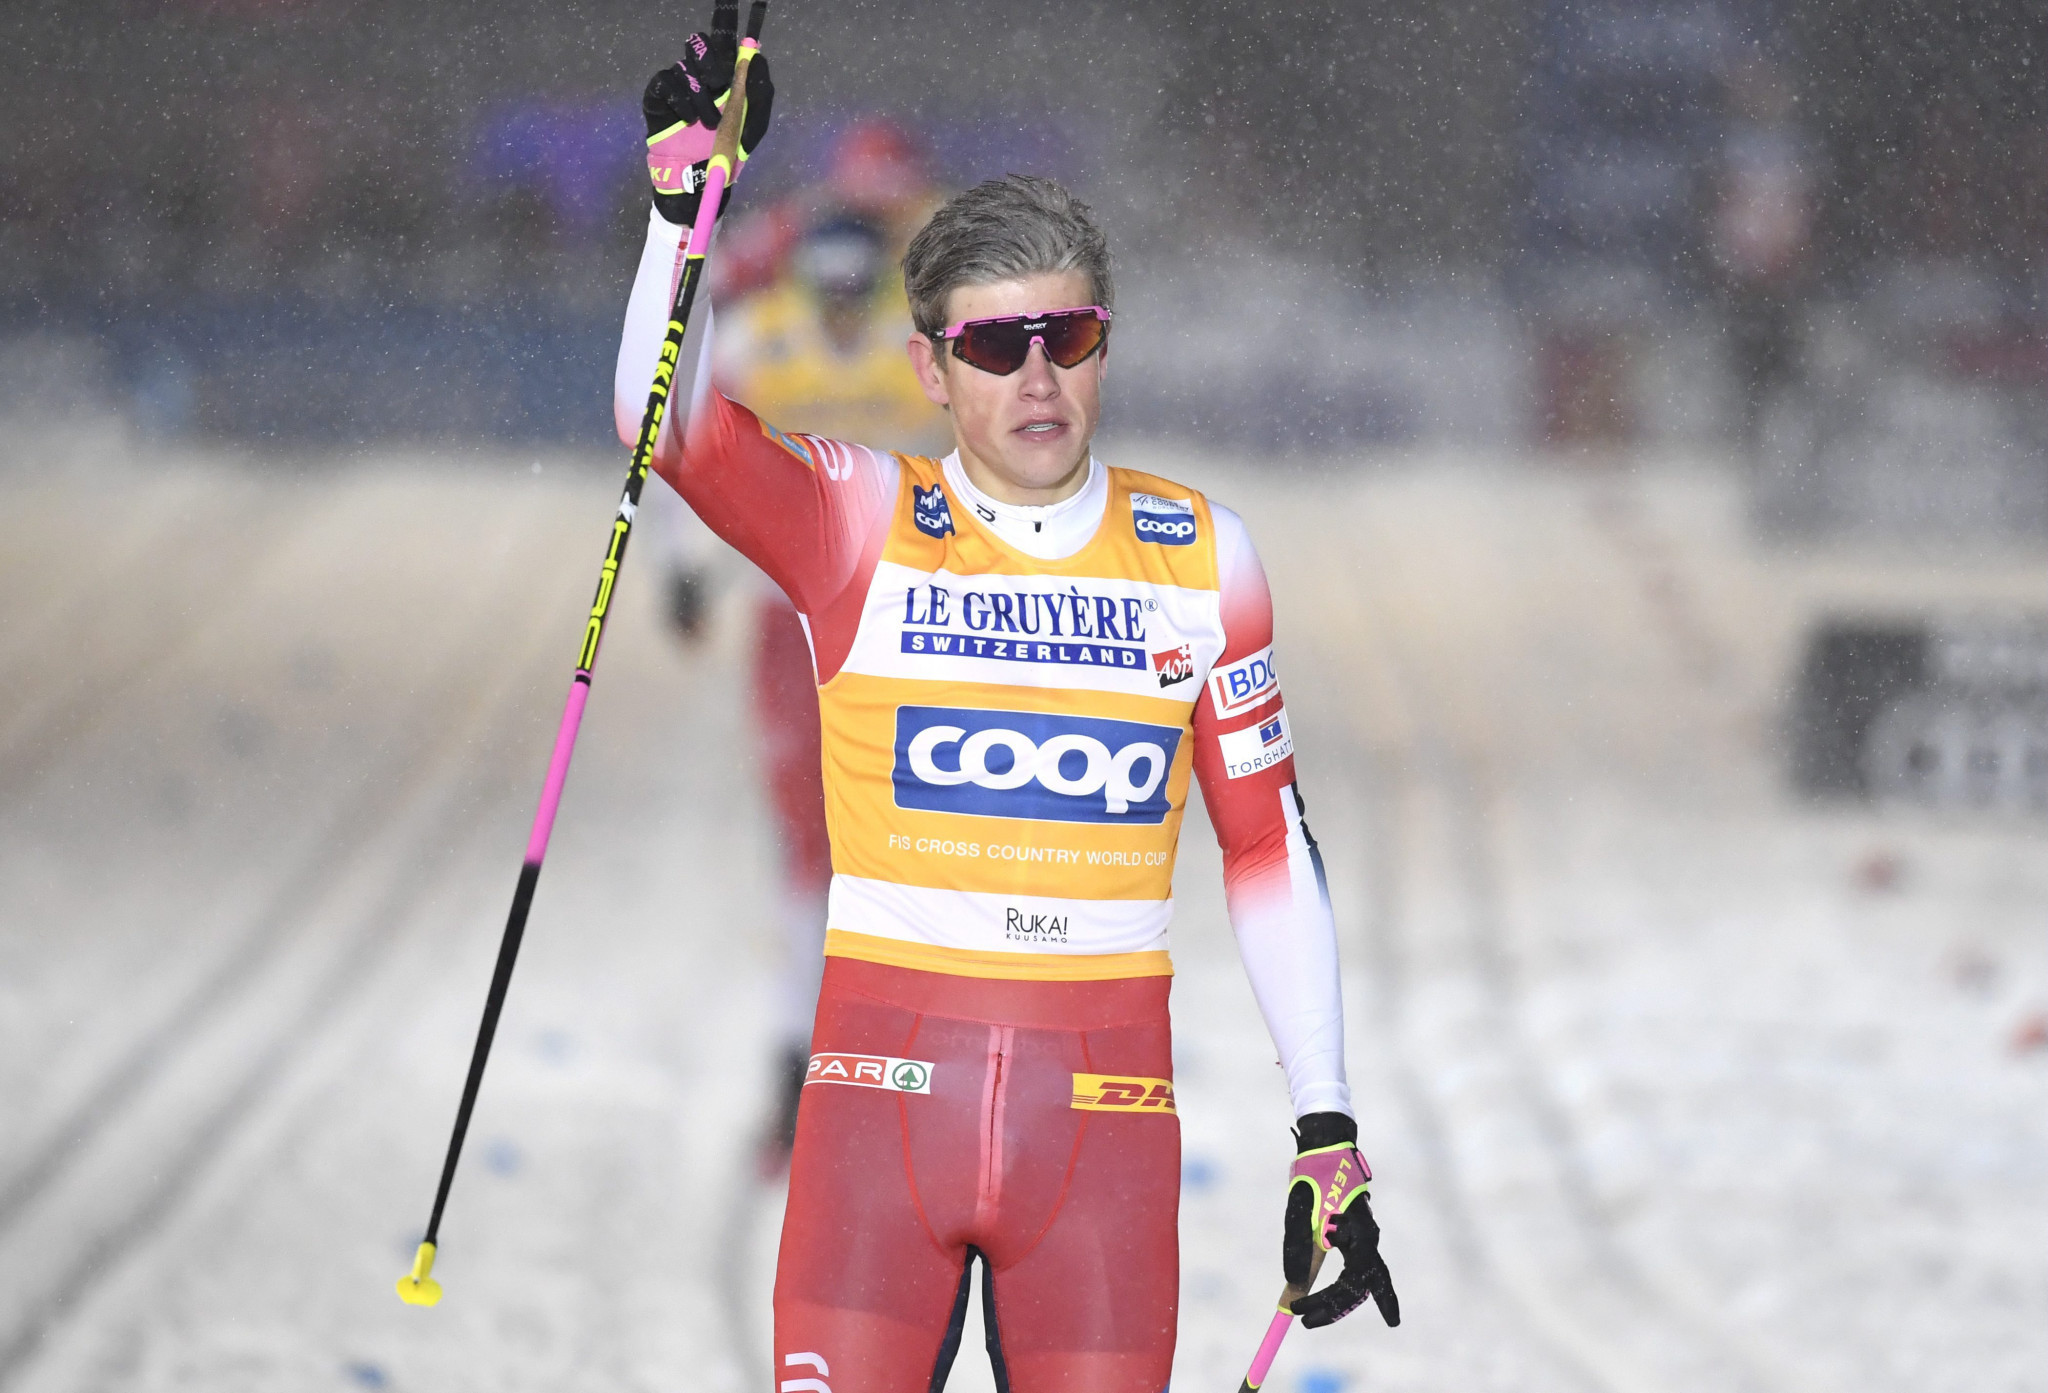 Defending champion Klæbo wins season opener at FIS Cross-Country World Cup